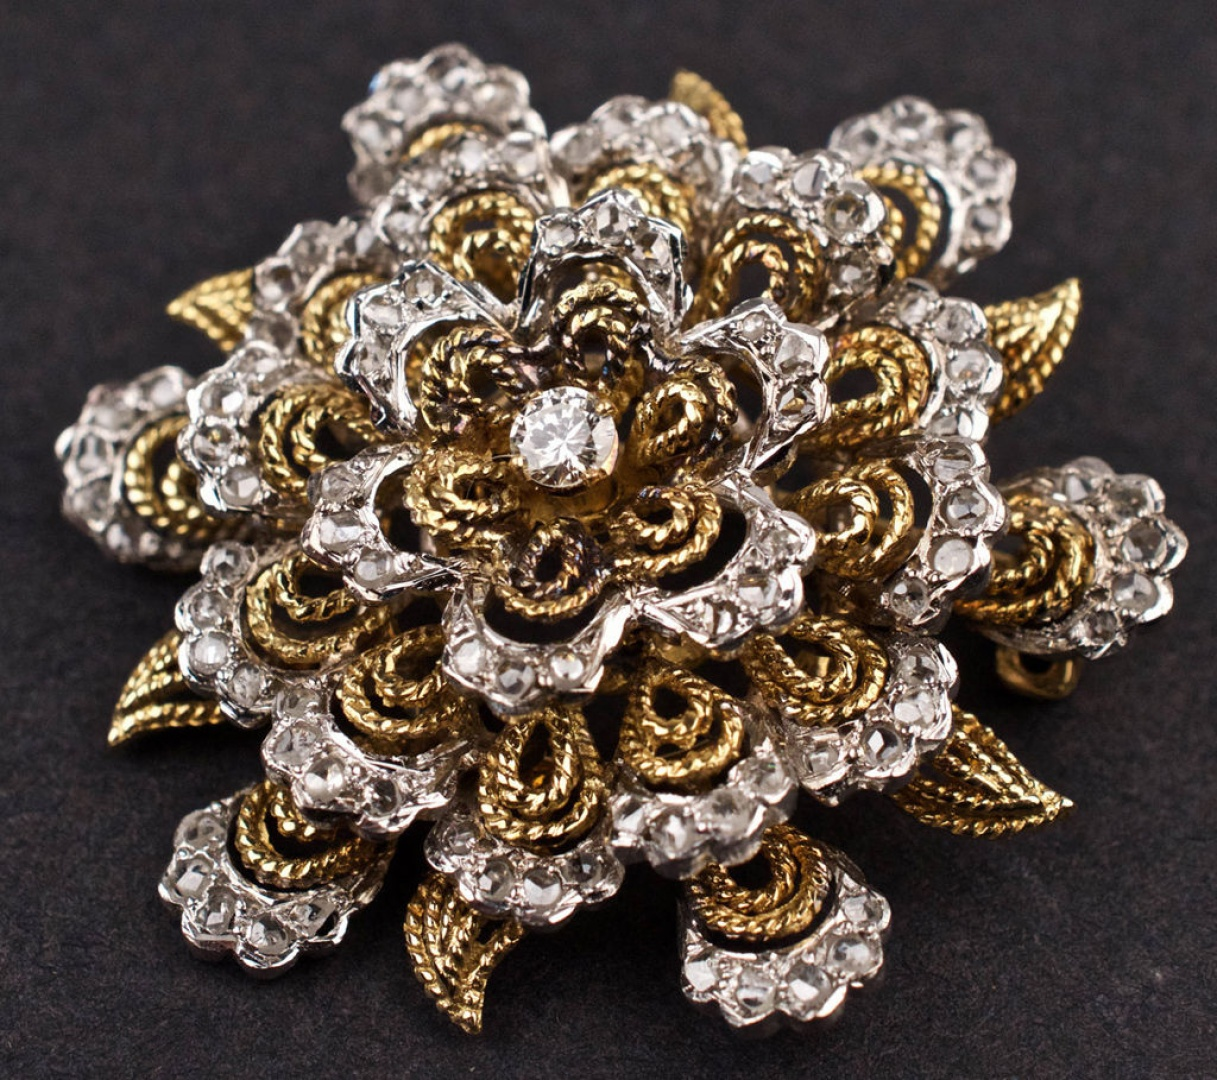 081ed107897 BJ220 Ladies Vintage Brooch in Yellow & White 18K GOLD with DIAMONDS 23.1g